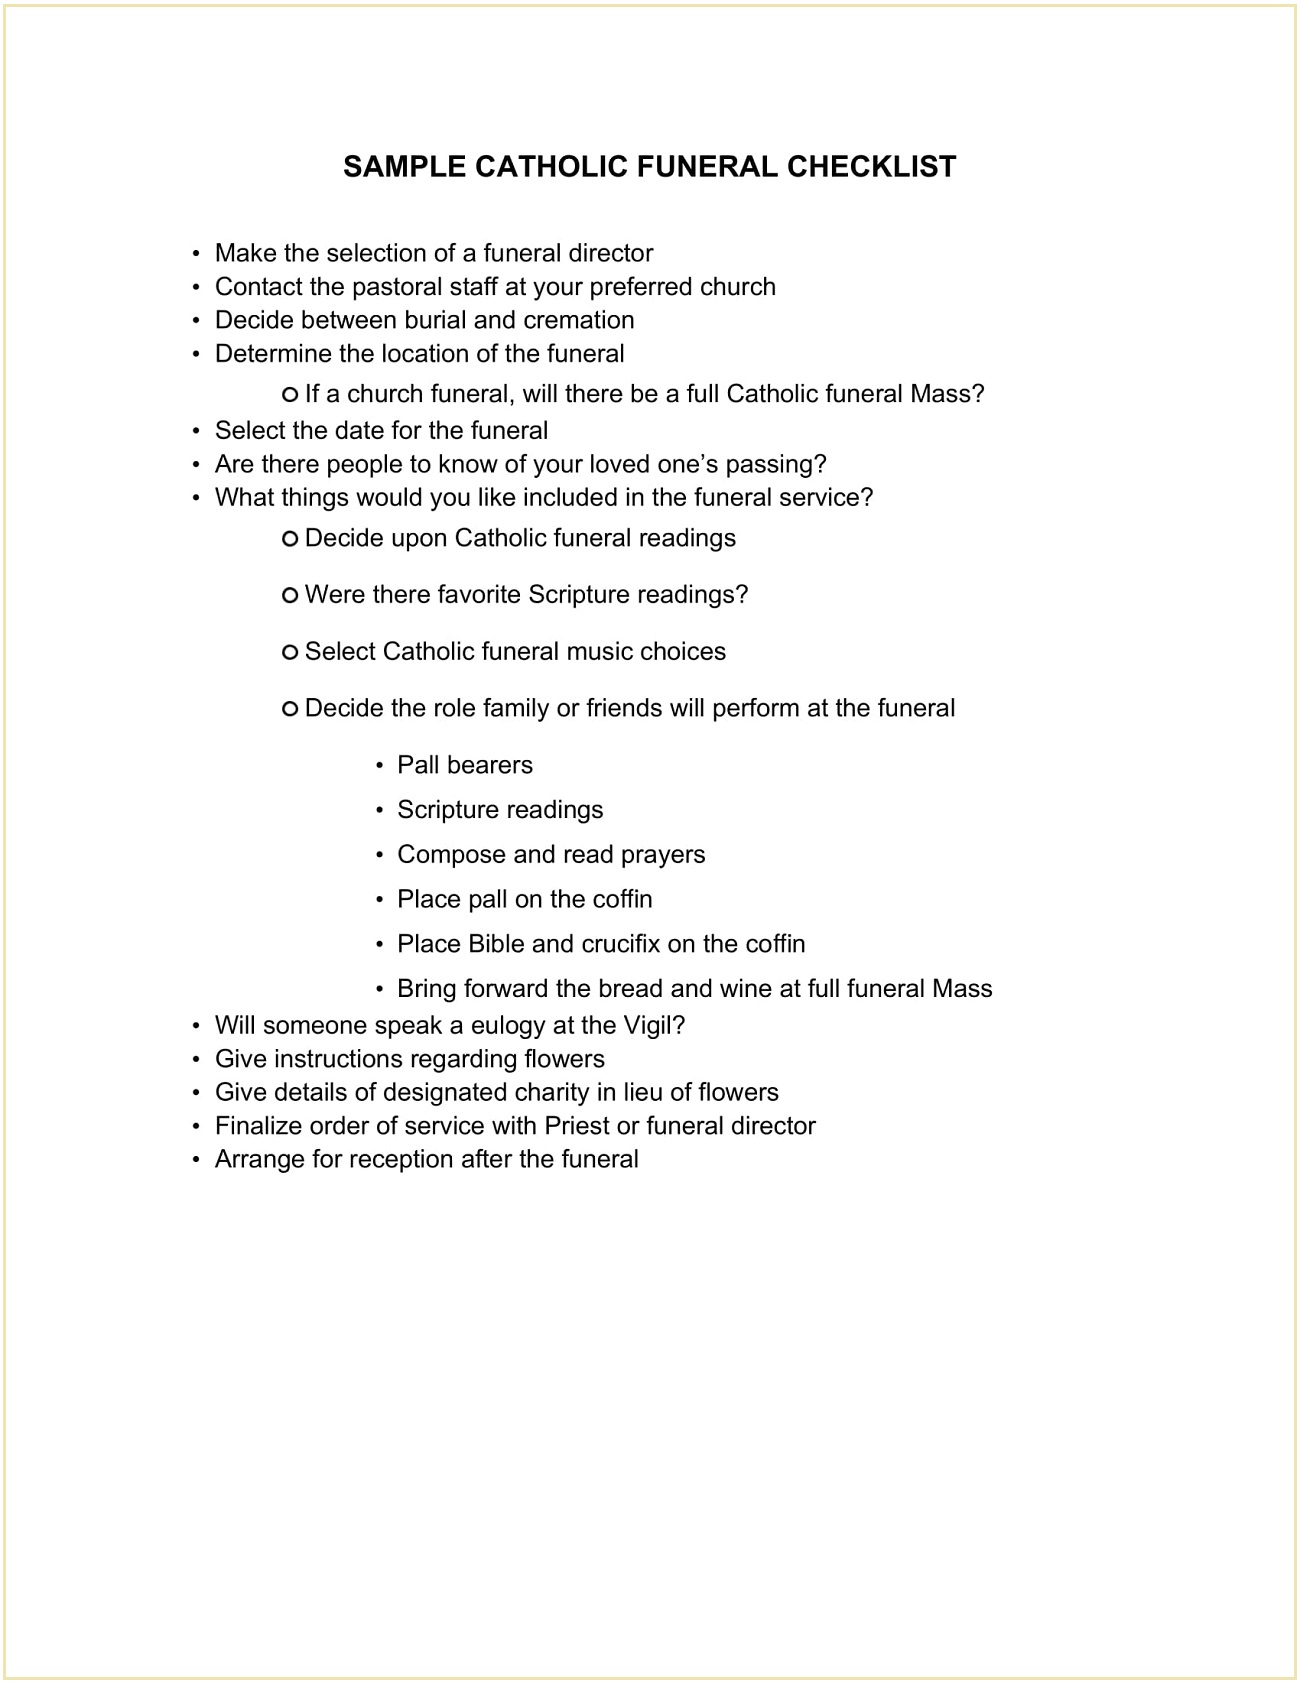 Sample Catholic Funeral Planning Checklist Template Word